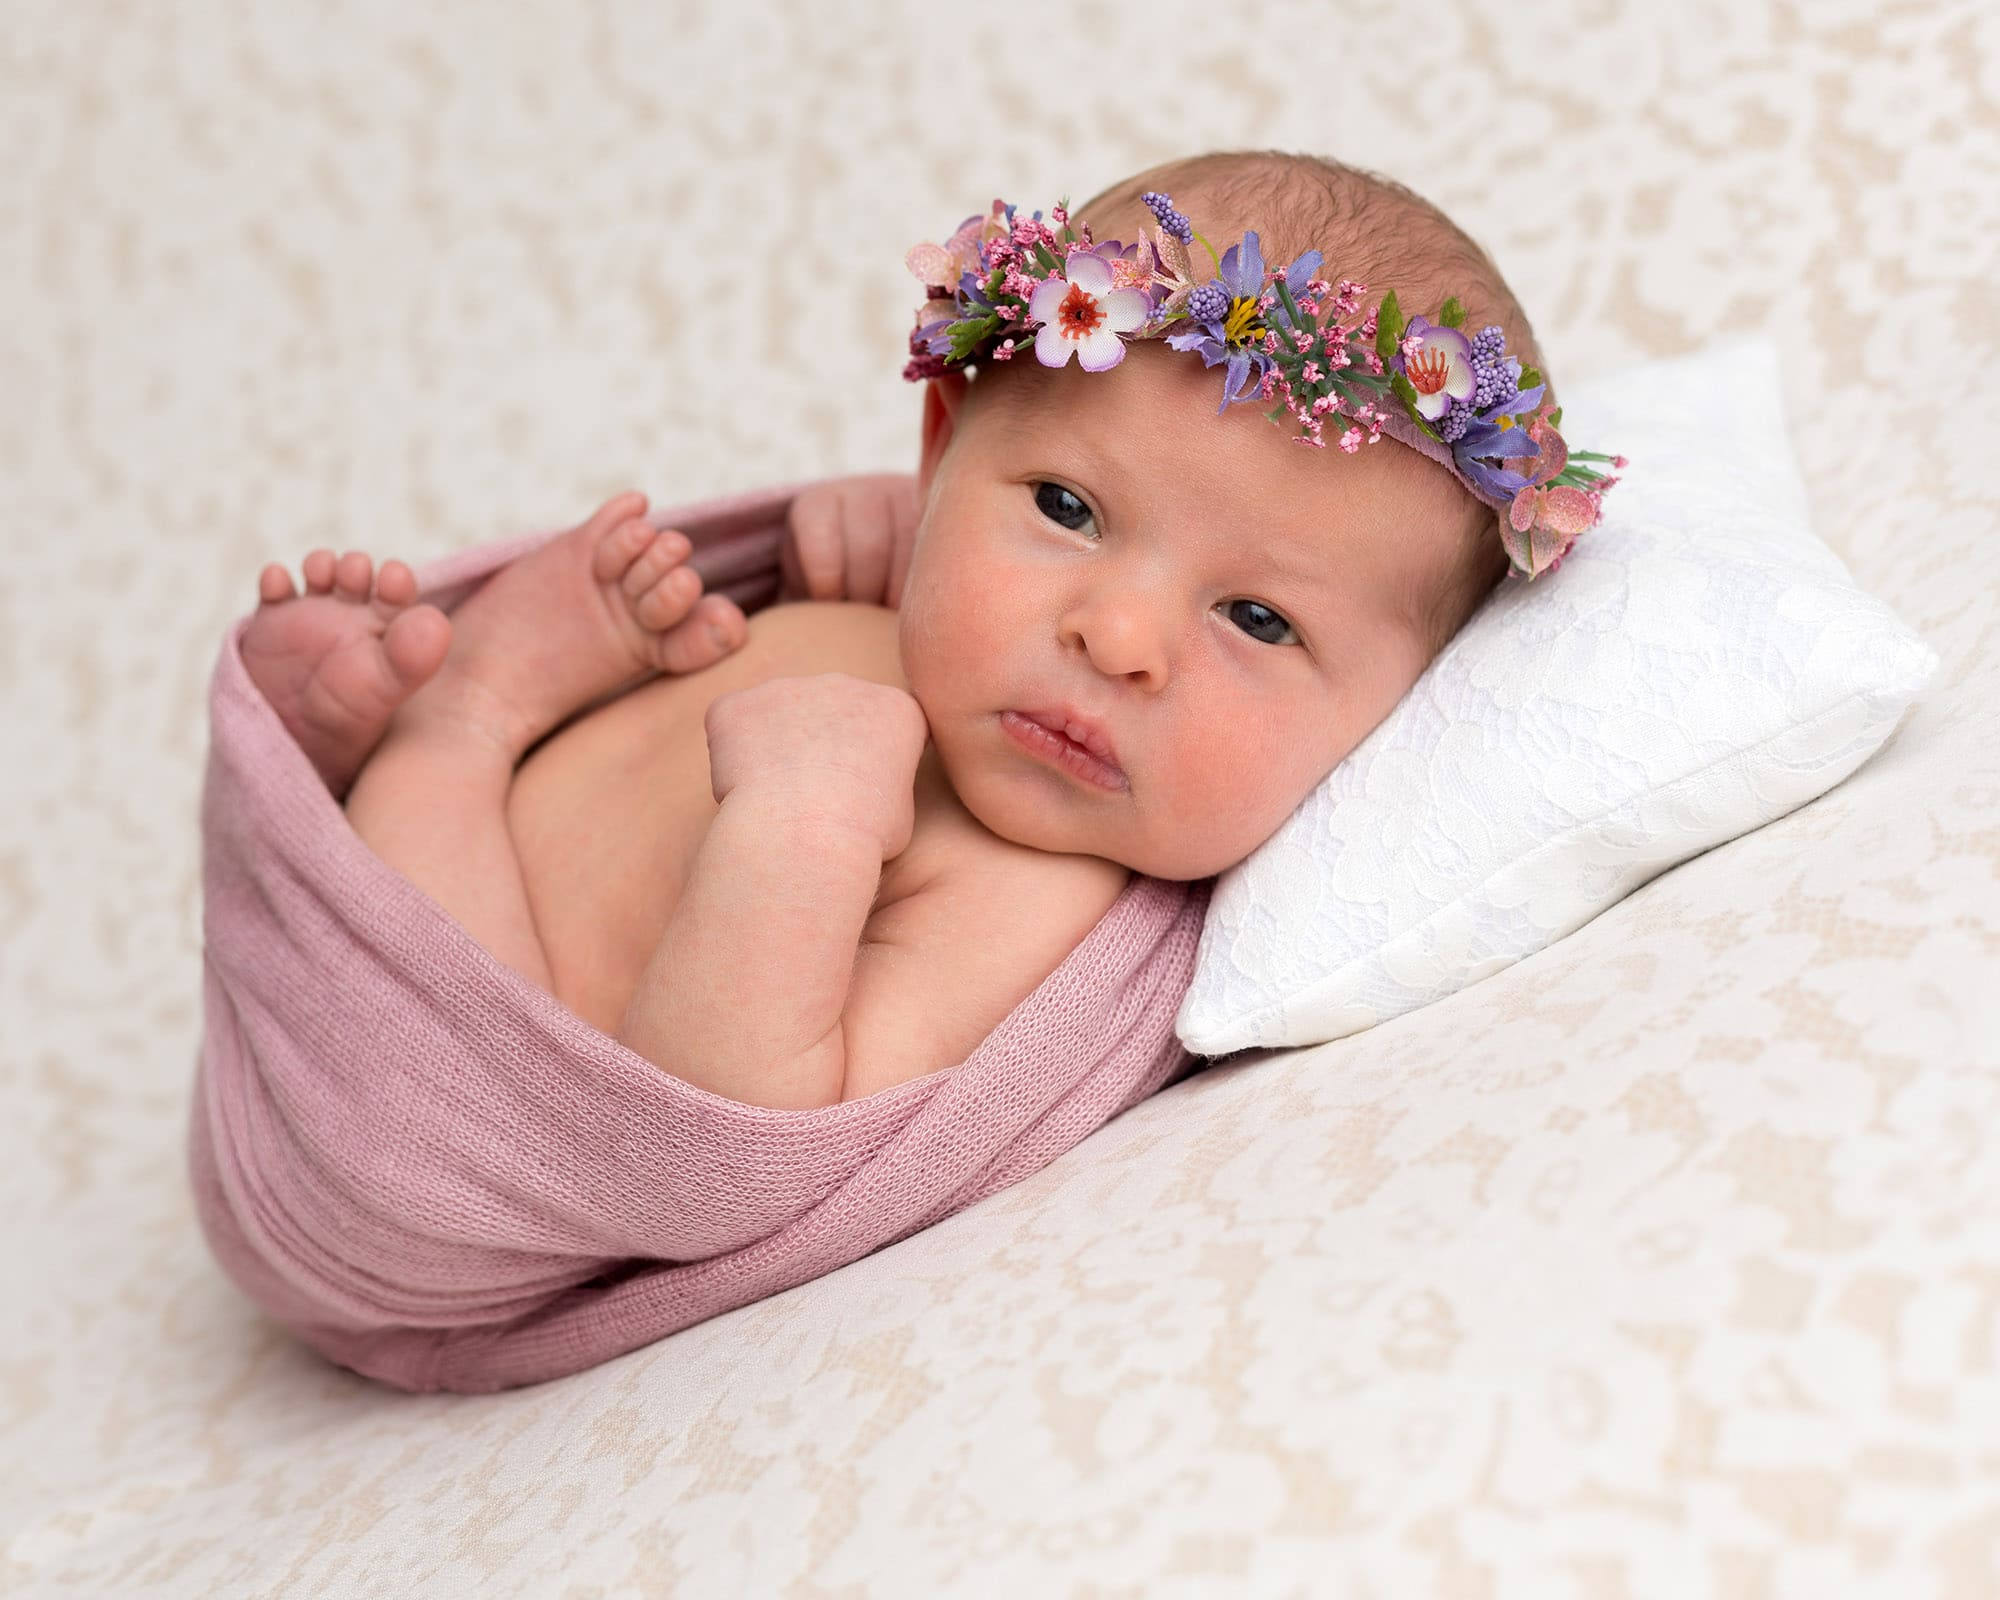 Newborn photoshoot baby girl in pink on lace blanket